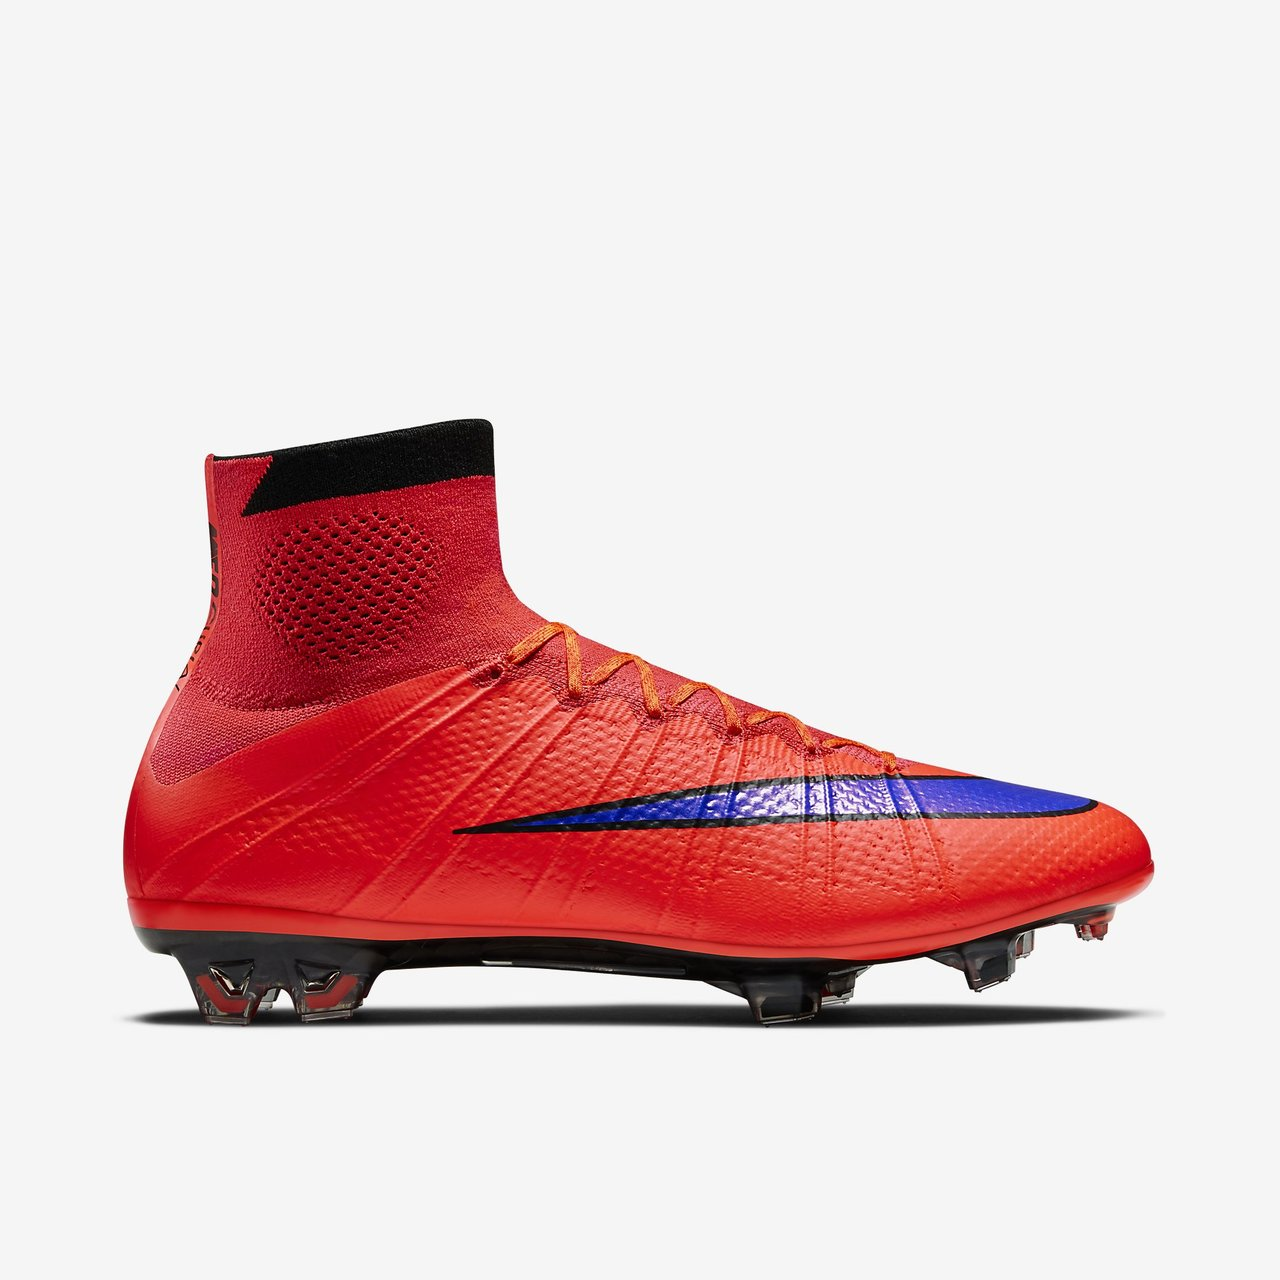 Nike Mercurial Superfly FG Boots - Intense Heat Pack ...